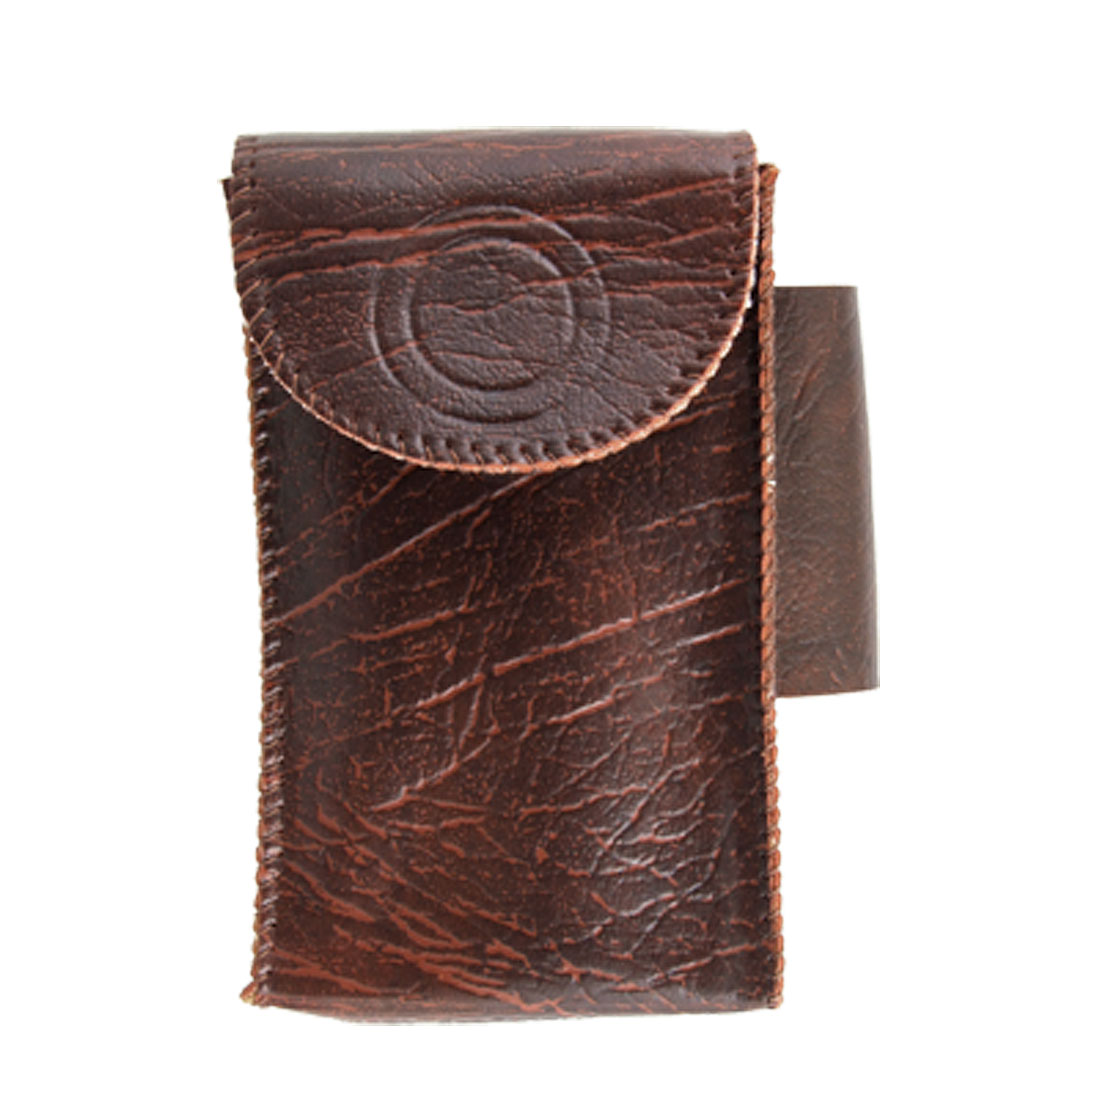 Brown Textured Faux Leather Cigarette Pouch w Lighter Holder